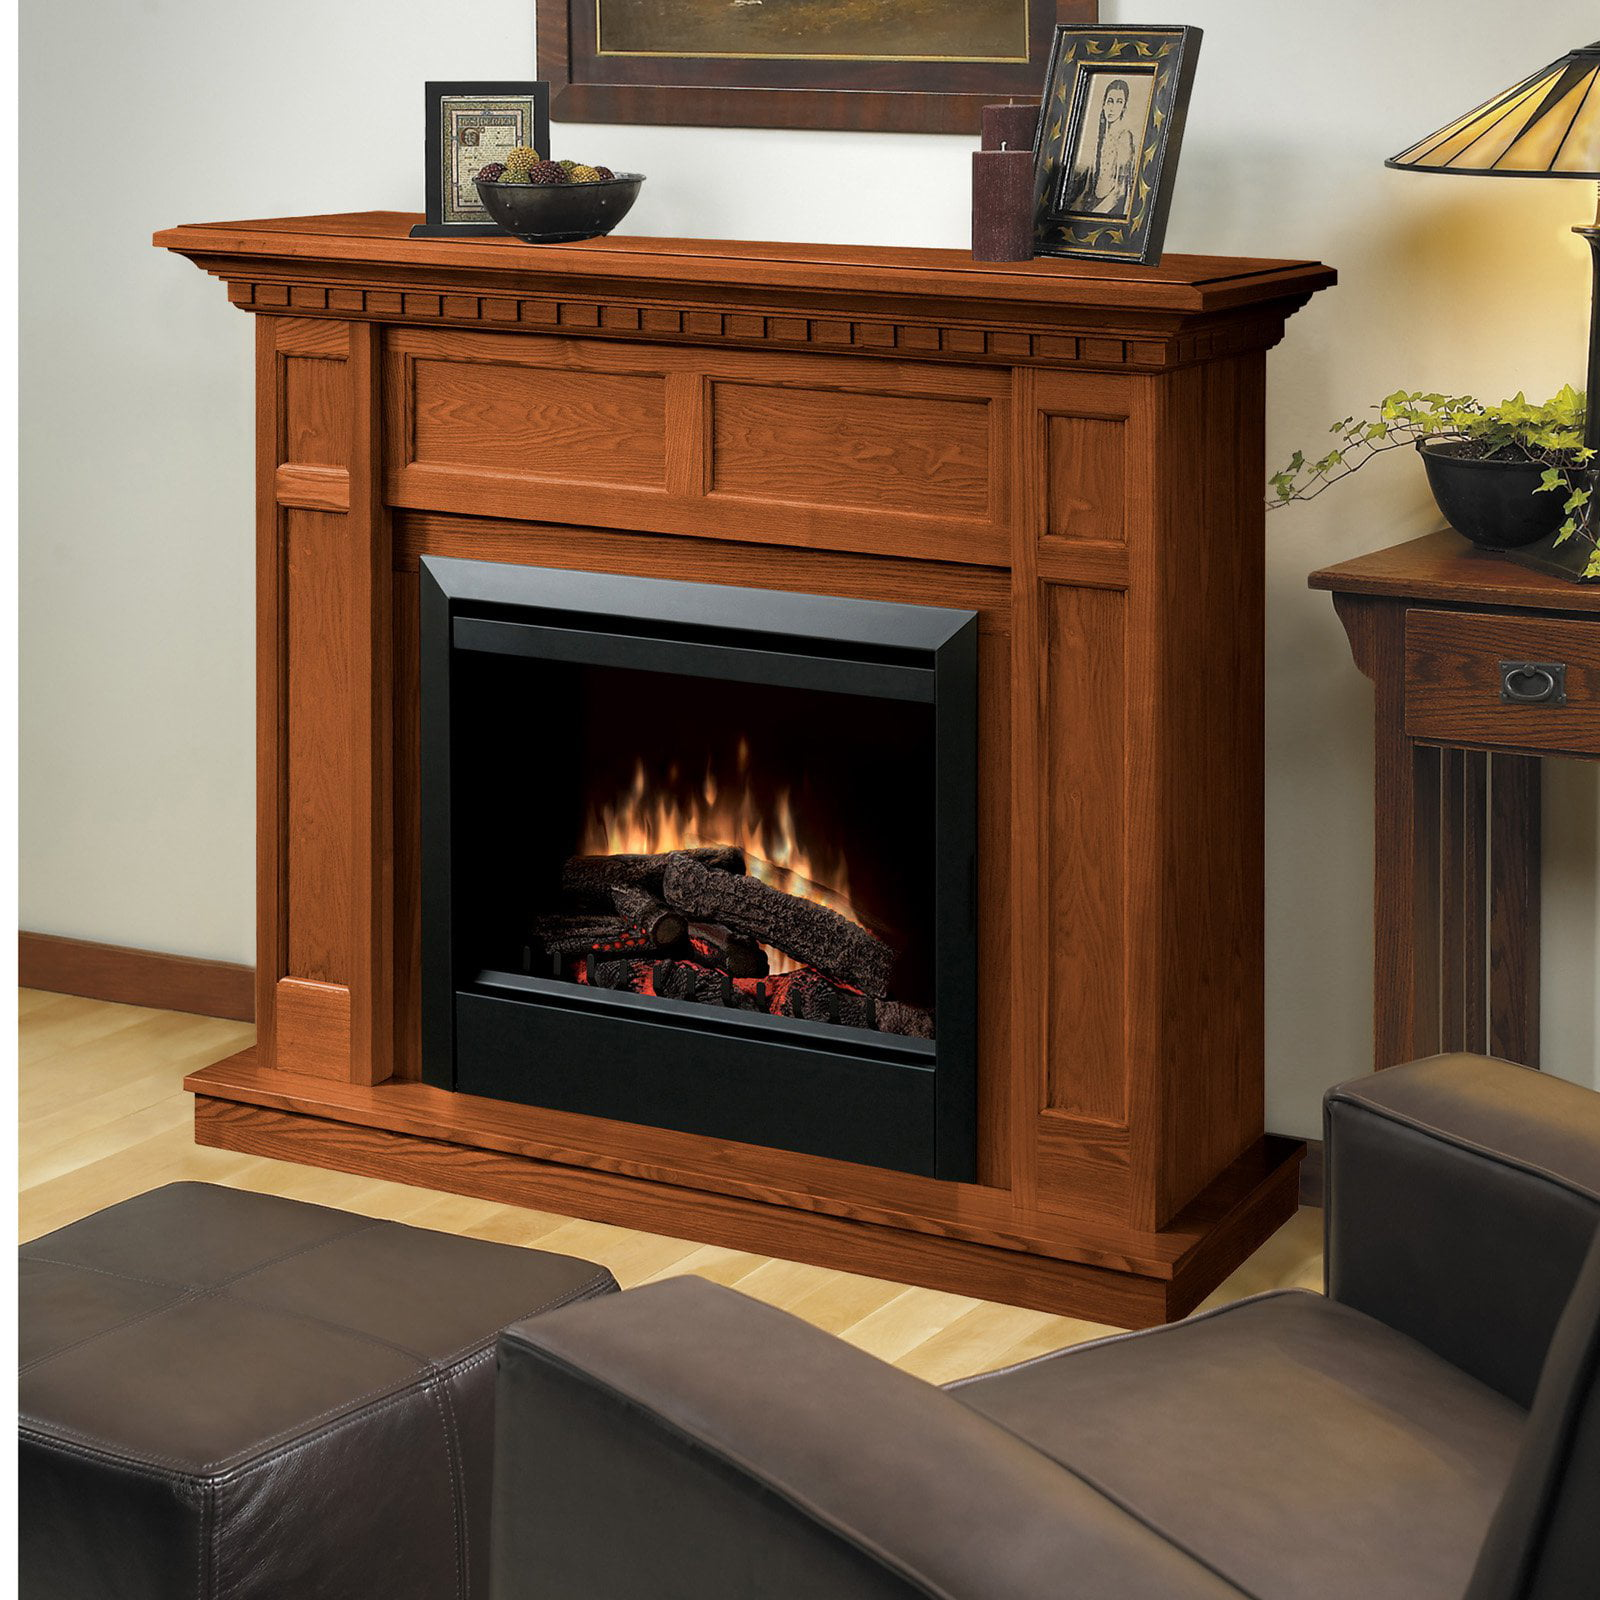 Free Shipping. Buy Dimplex Caprice Electric Fireplace at Walmart.com